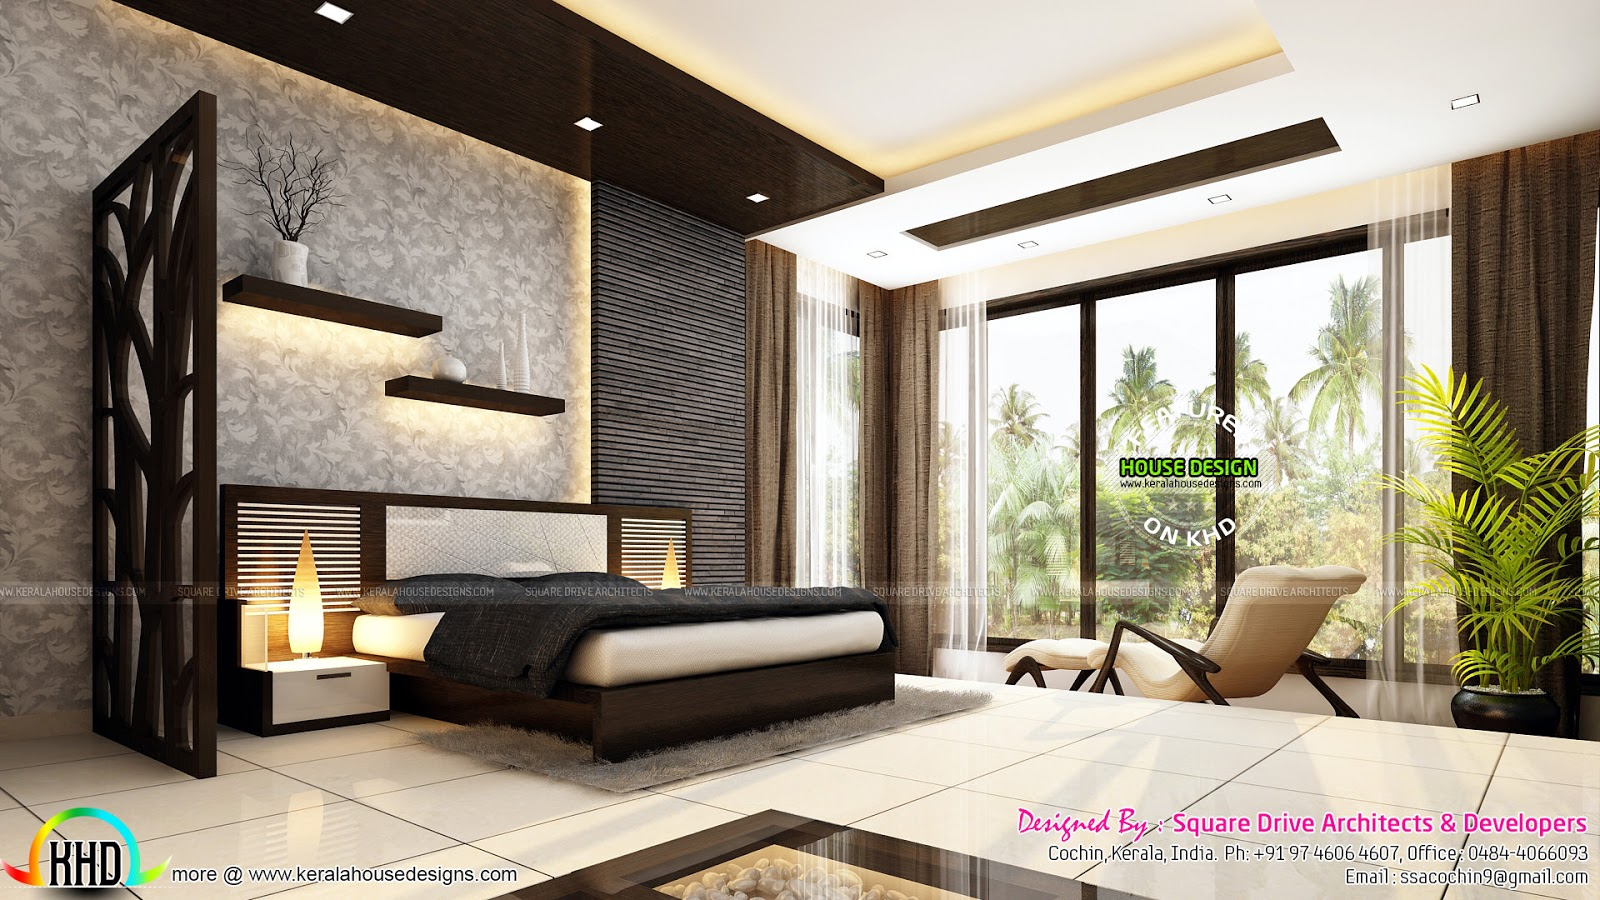 Very beautiful modern interior designs kerala home for Modern house interior design bedroom